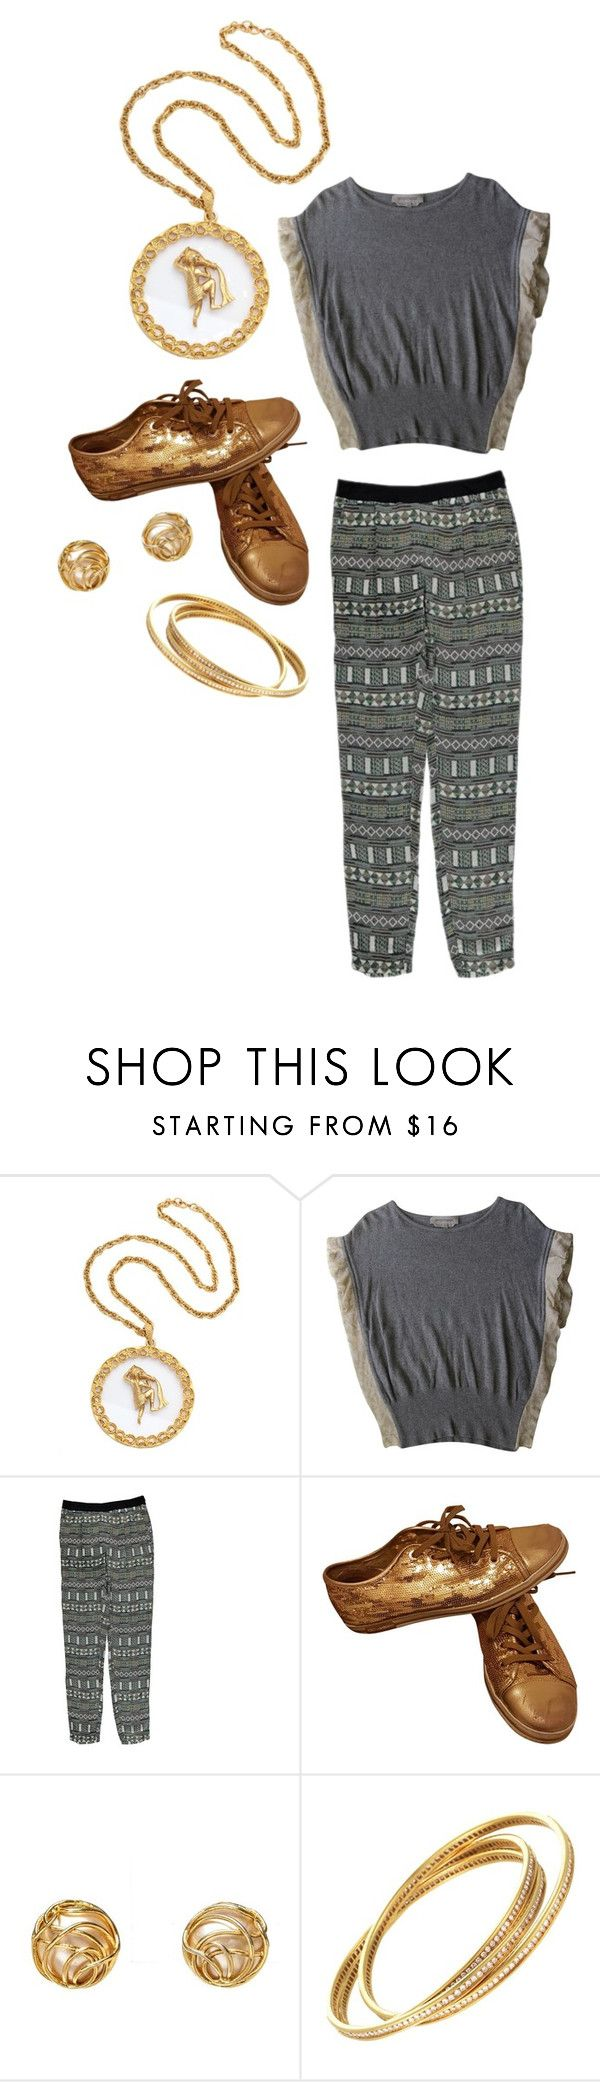 """""""Cosmic"""" by perpetto ❤ liked on Polyvore featuring Sportmax, Vero Moda, Dolce&Gabbana and Chanel"""